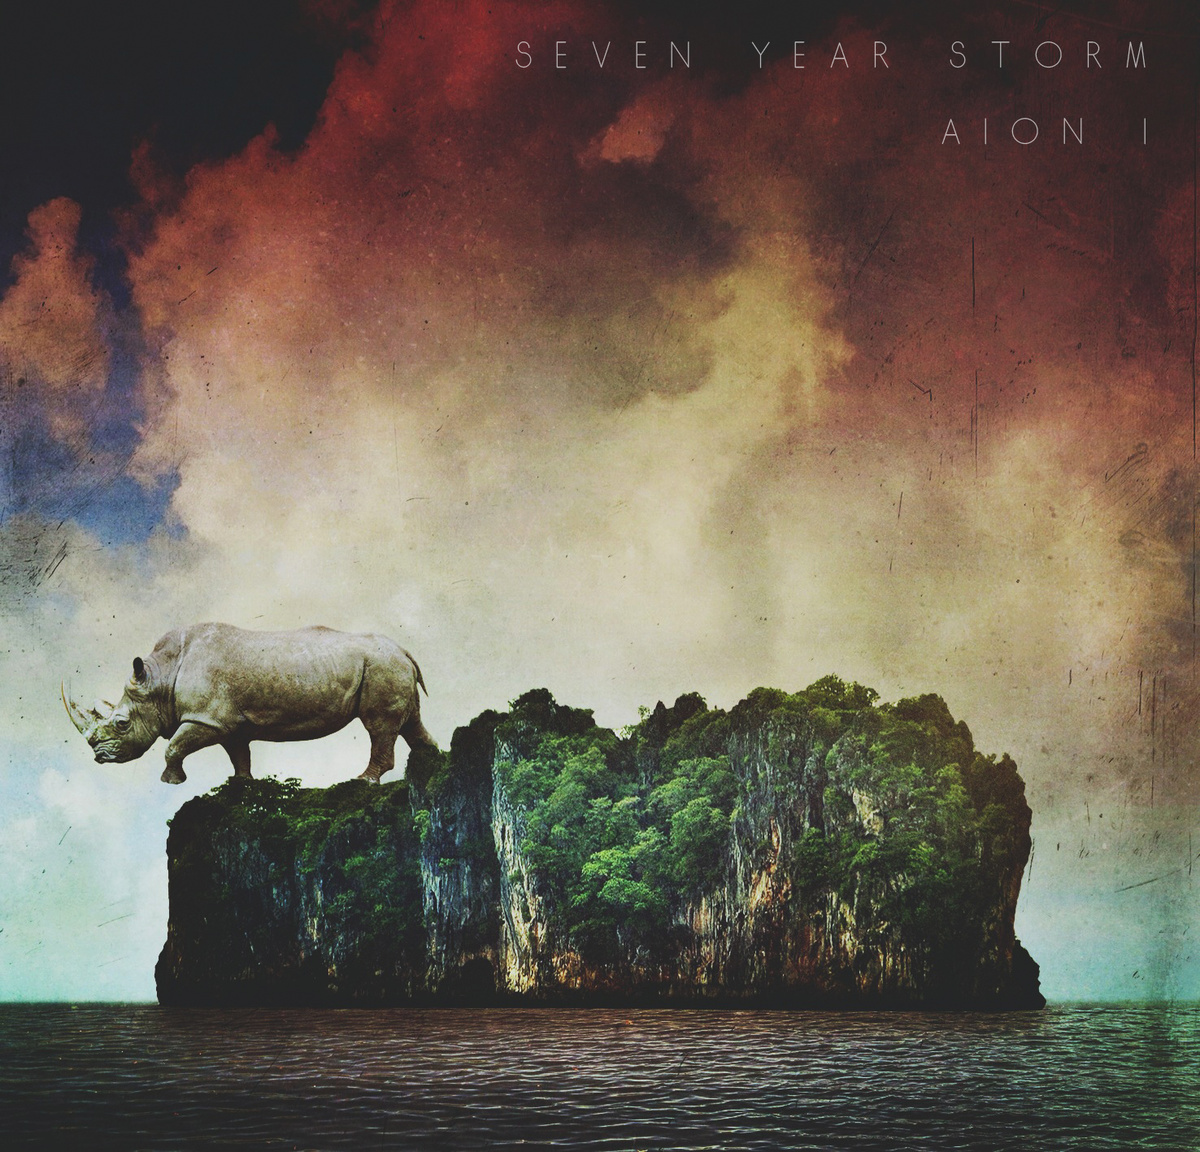 Seven Year Storm: Aion I